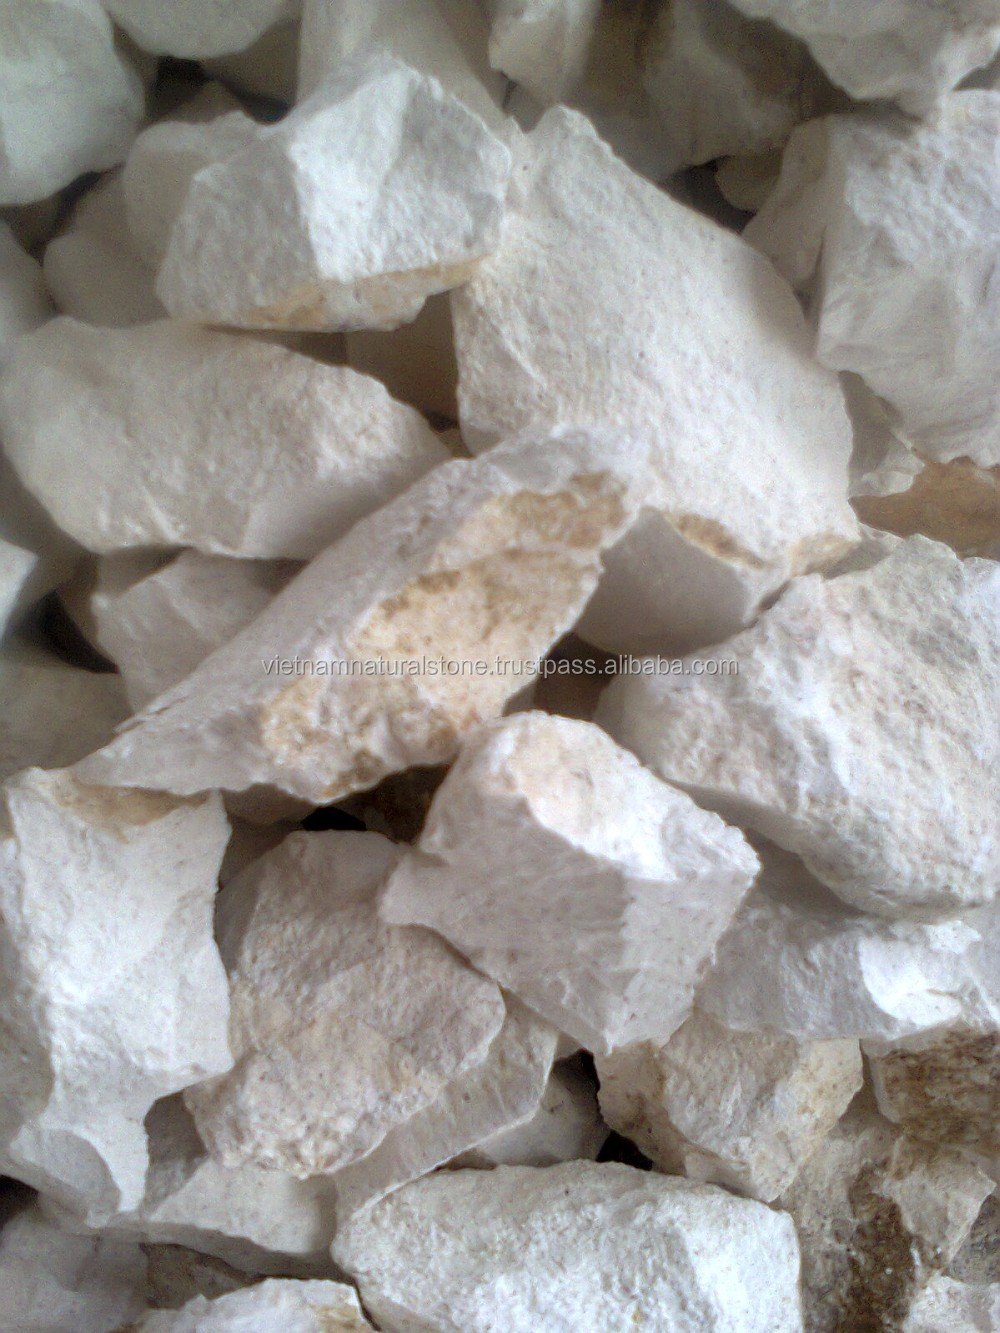 Quick lime CaO min 90%/ Calcium Oxide/Burnt lime